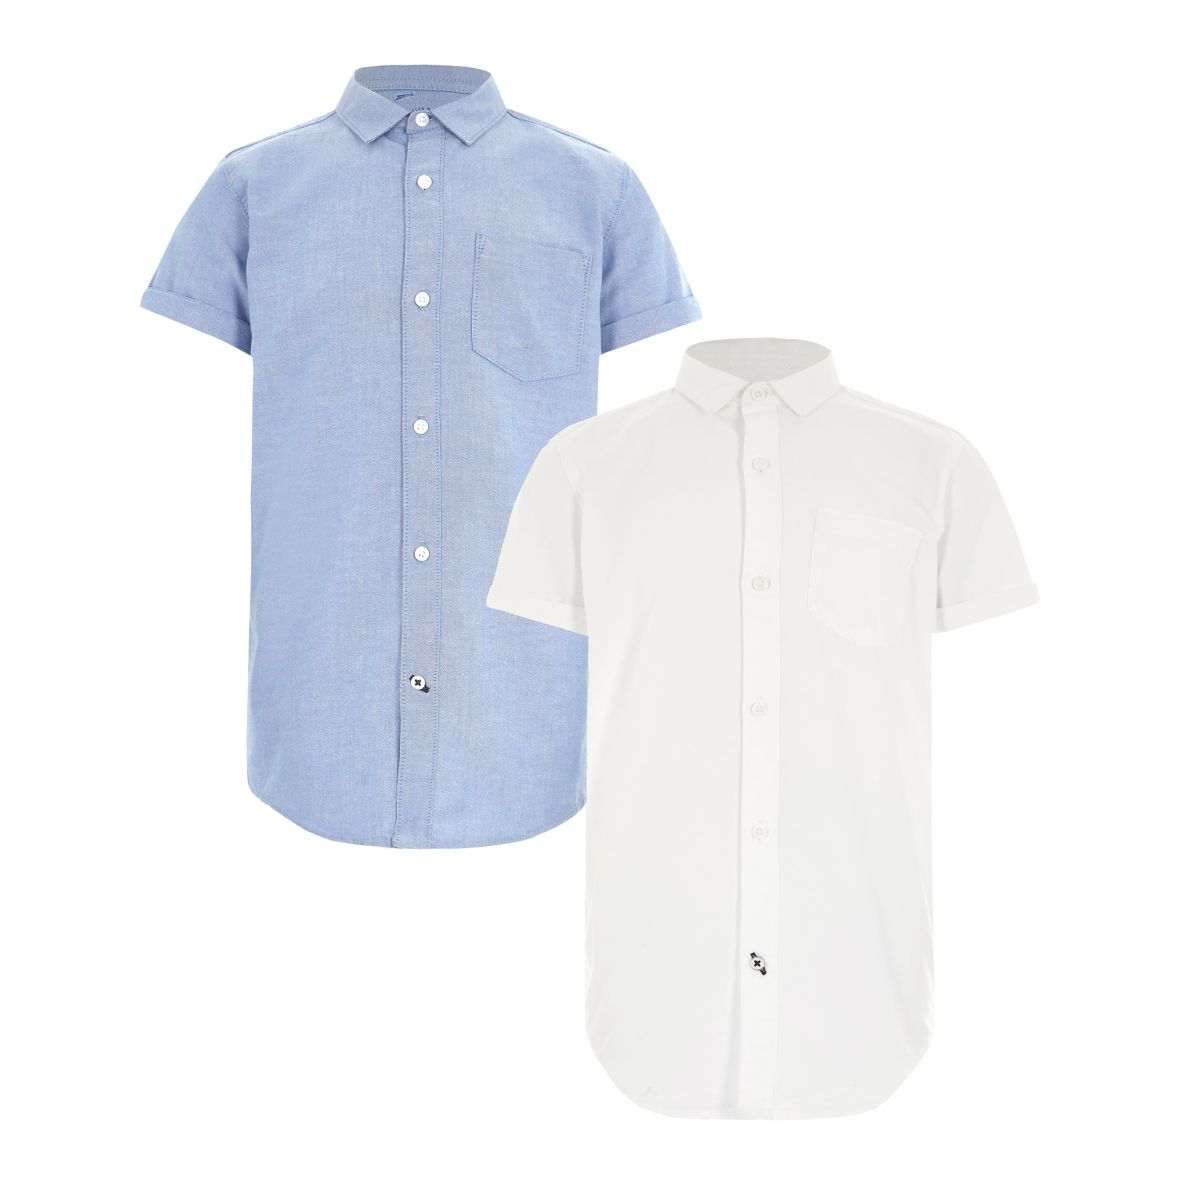 Boys blue and white Oxford shirt multipack